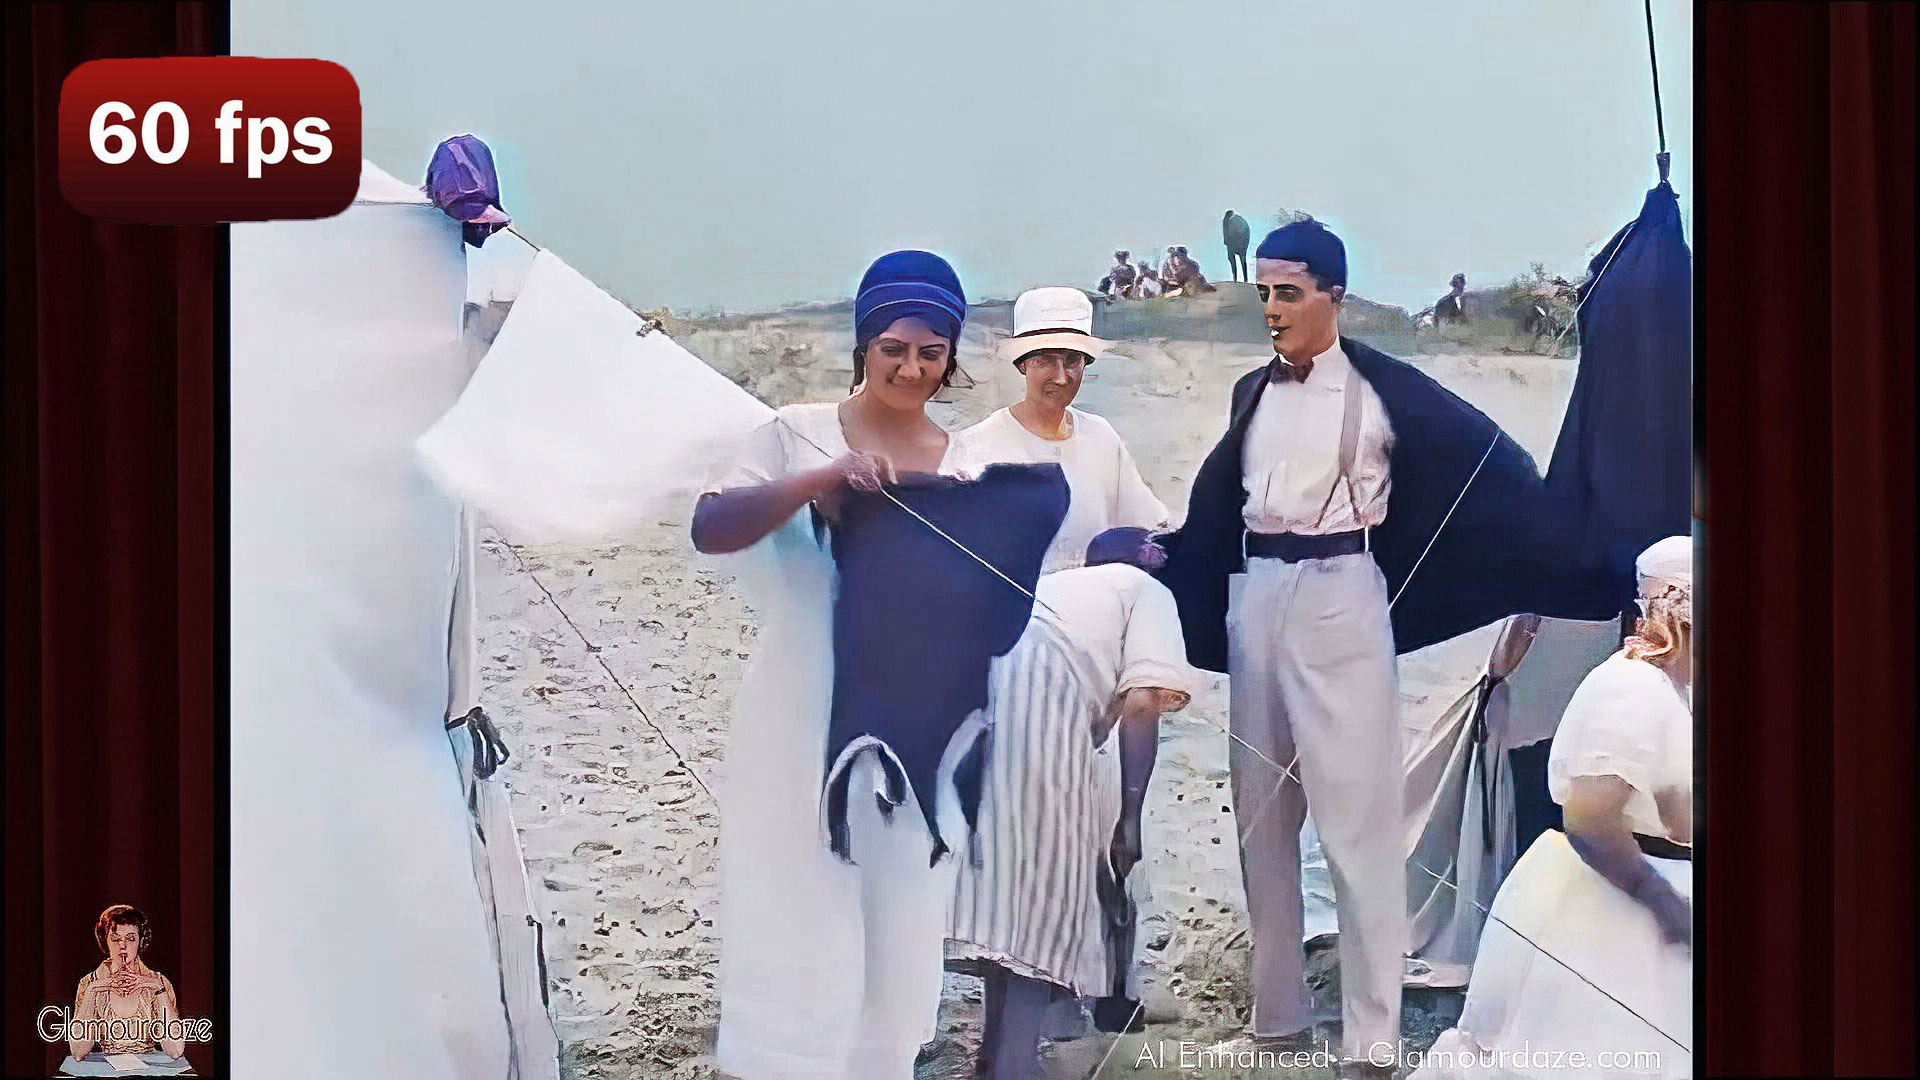 A Day at the beach in 1921